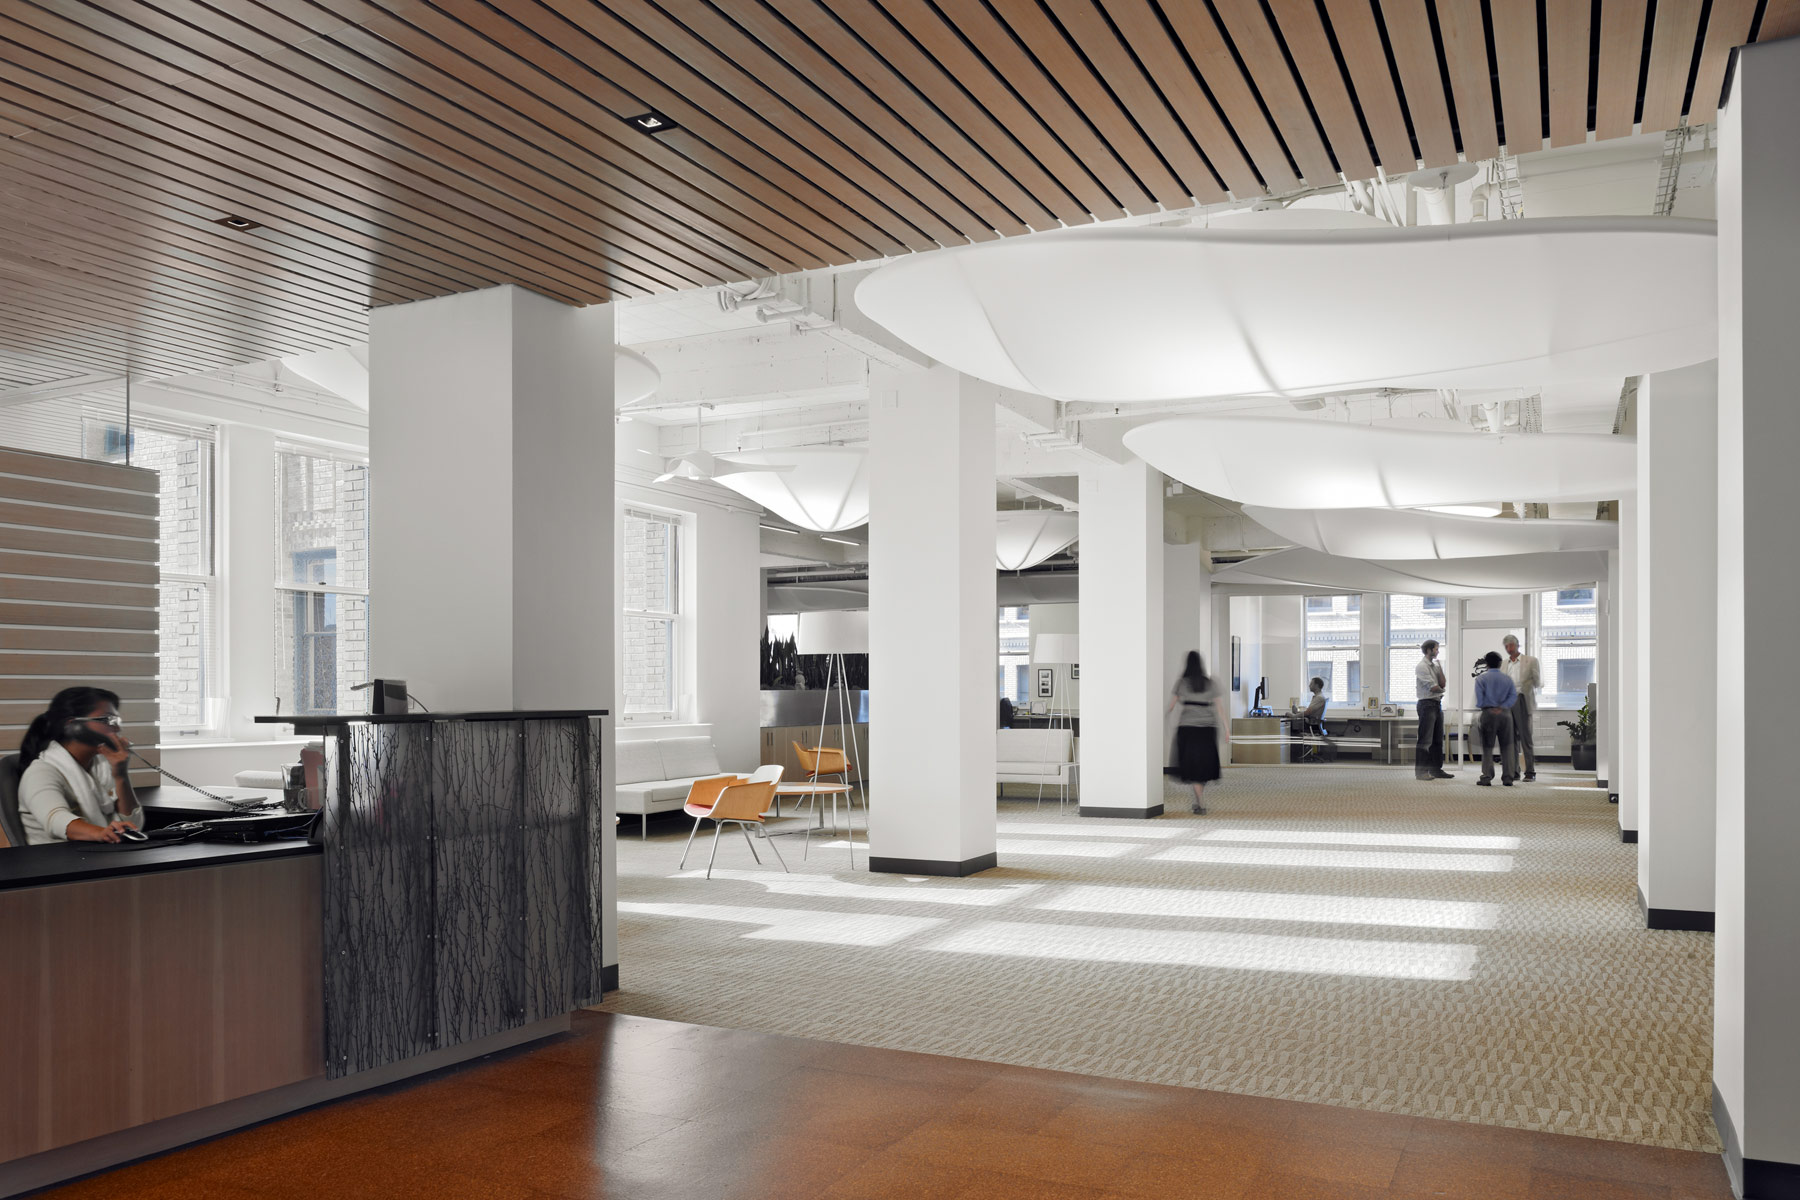 The highly sustainable, LEED Platinum-rated ClimateWorks Foundation office space weaves together advanced energy-efficiency and carbon reduction within inviting spaces that connect staff and visitors to each other and the natural world.